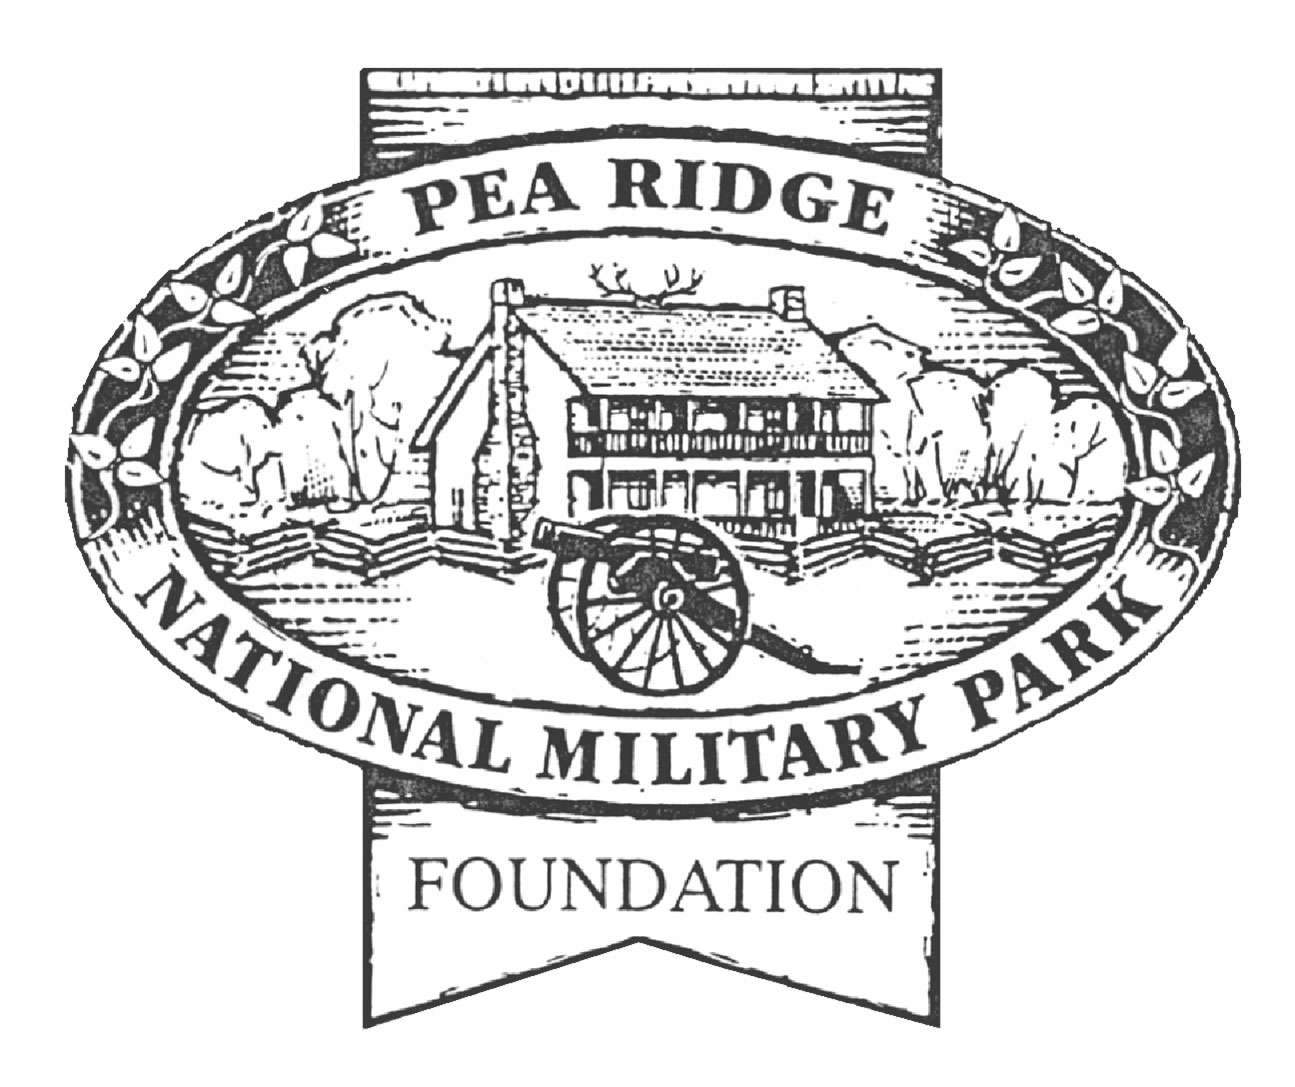 Pea Ridge National Military Park Foundation